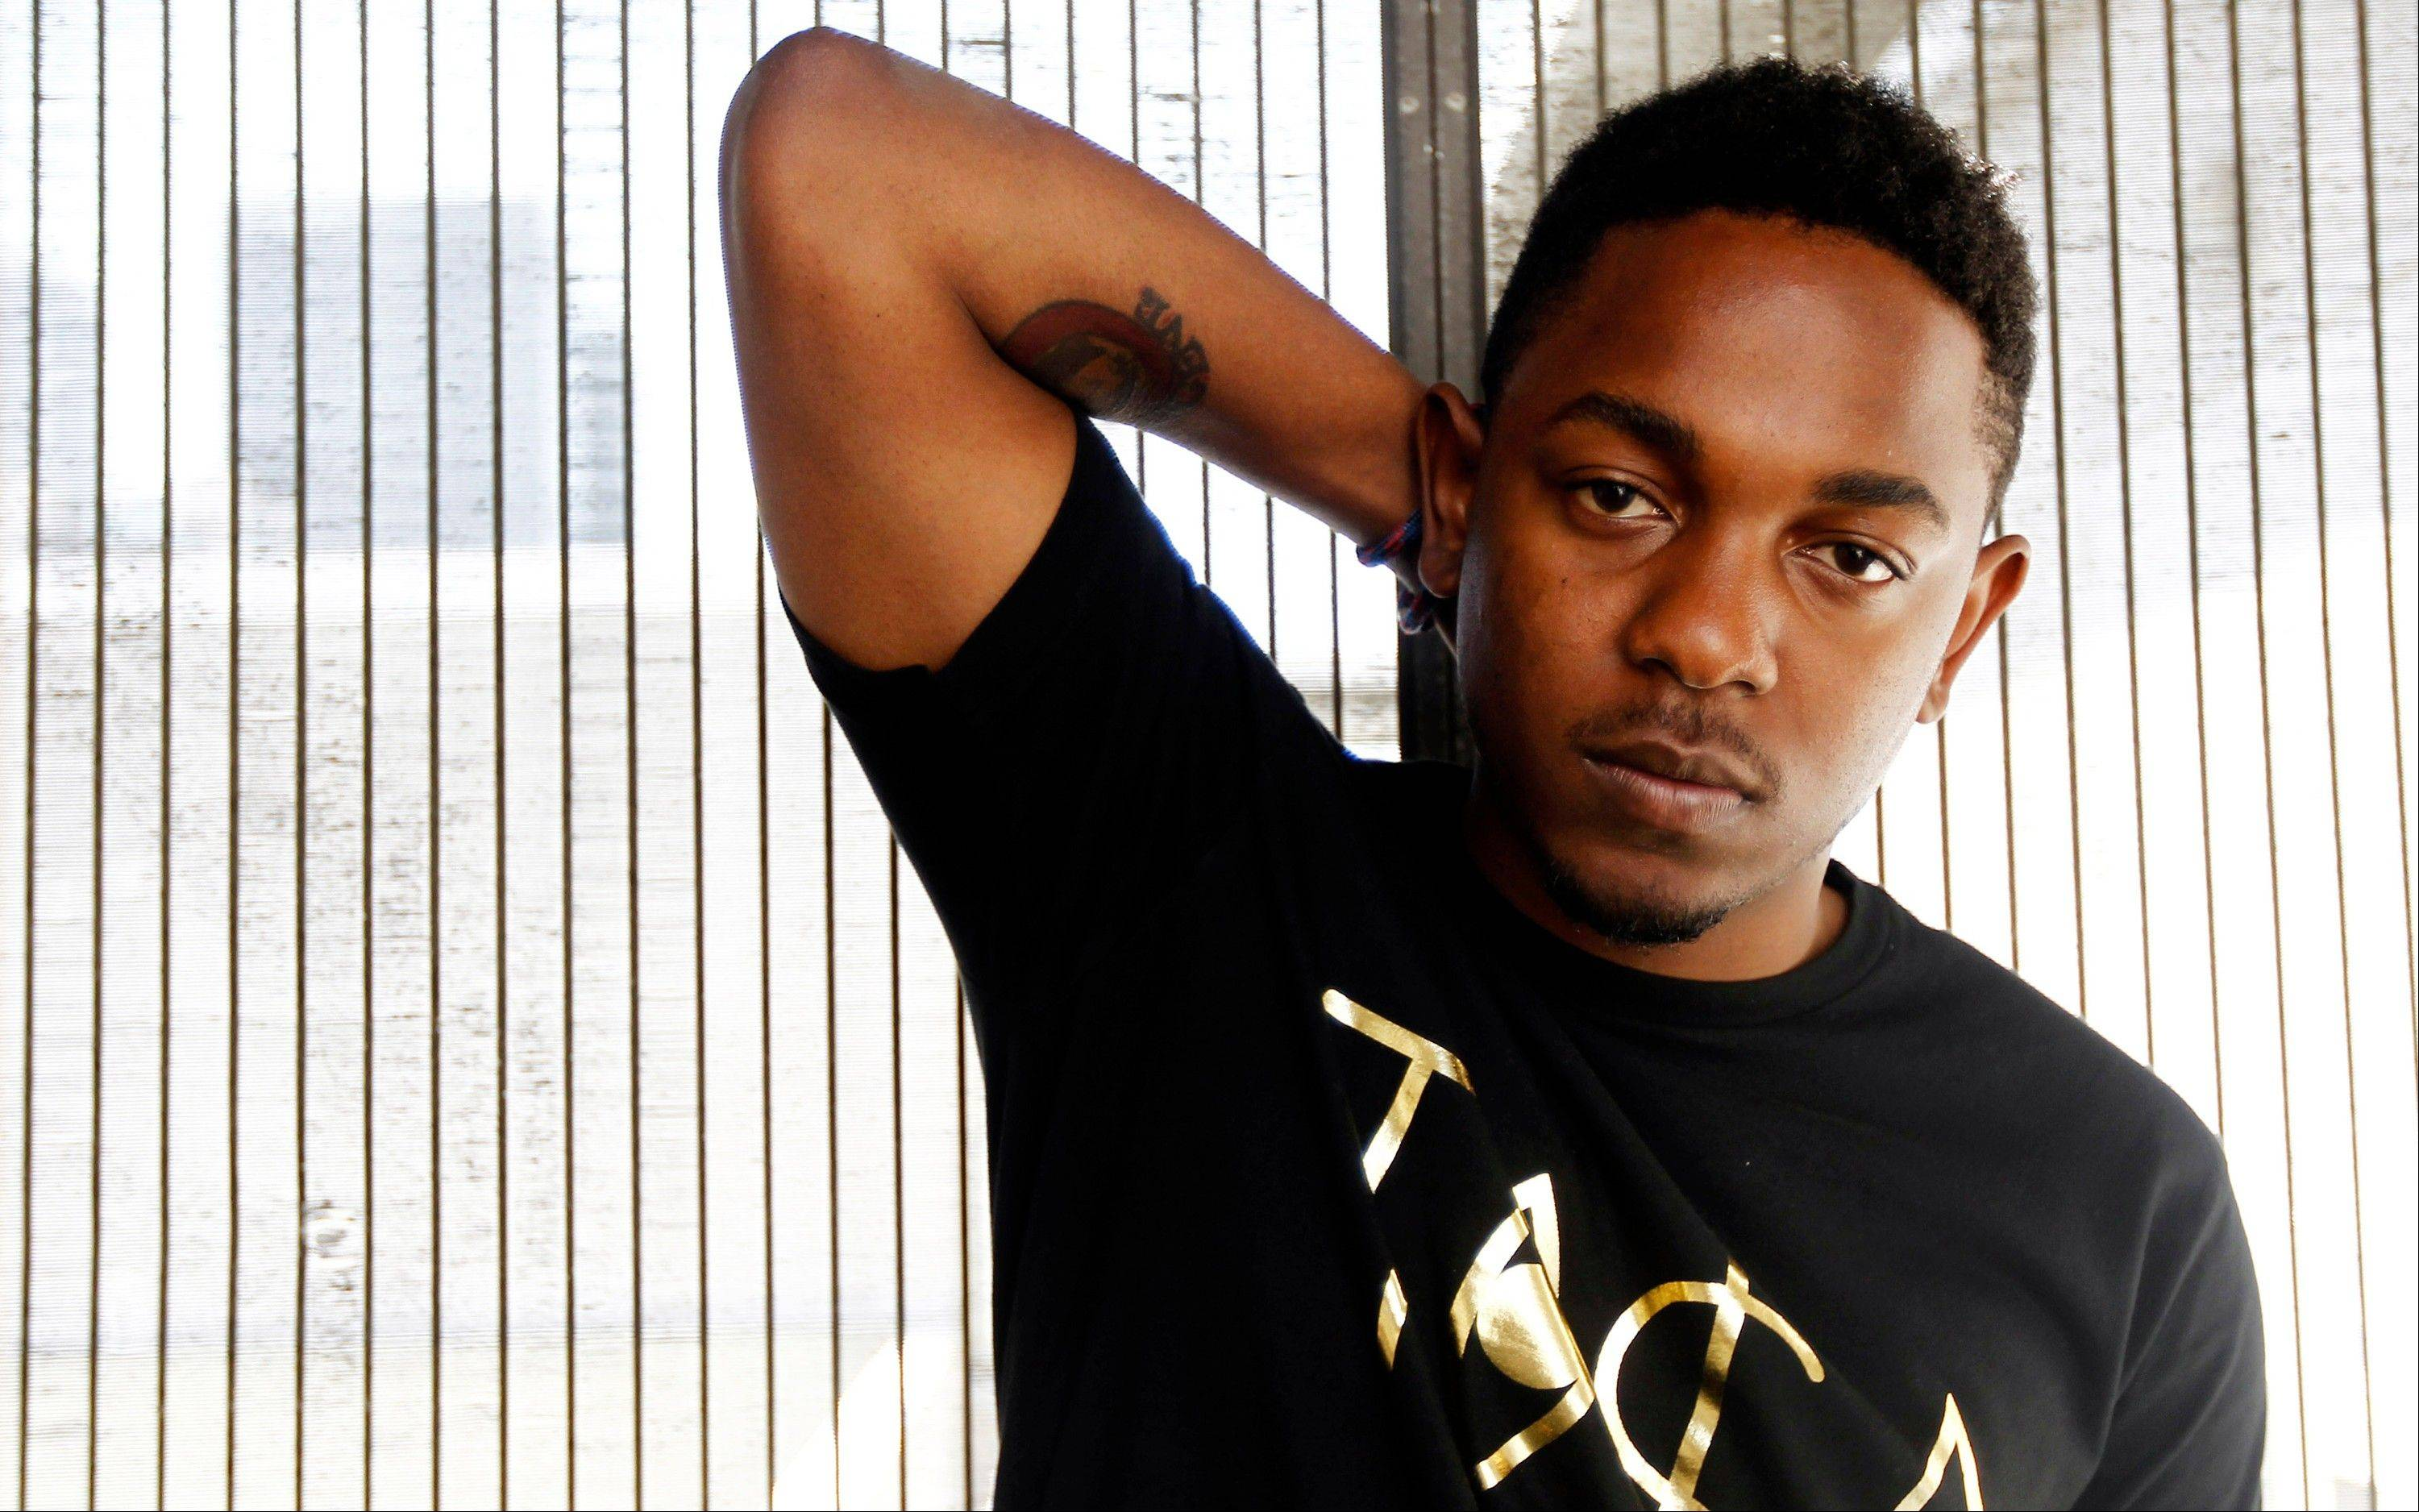 Rapper Kendrick Lamar made a splash with his major label release, debuting No. 2 on Billboard�s Top 200 behind Taylor Swift, and topped the rap charts with more than 241,000 copies sold.